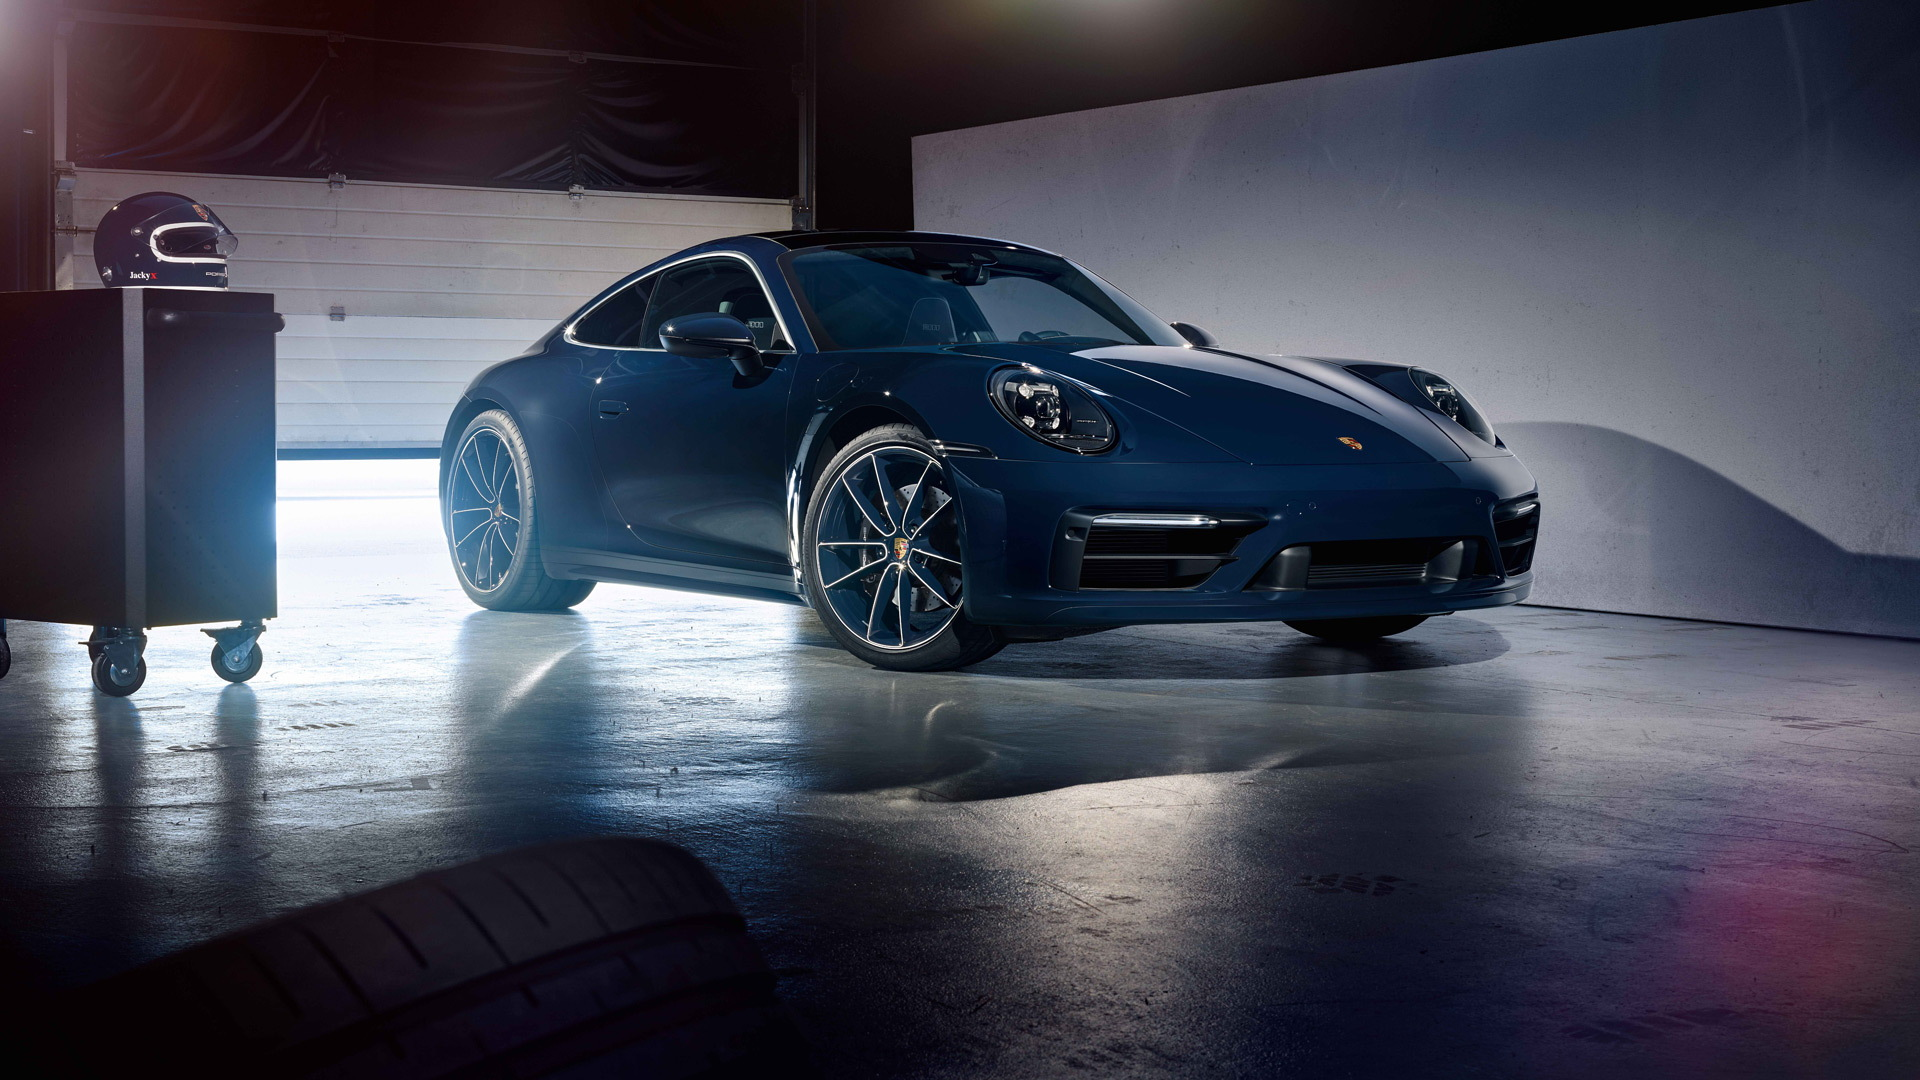 2020 Porsche 911 Carrera 4S Belgian Legend Edition